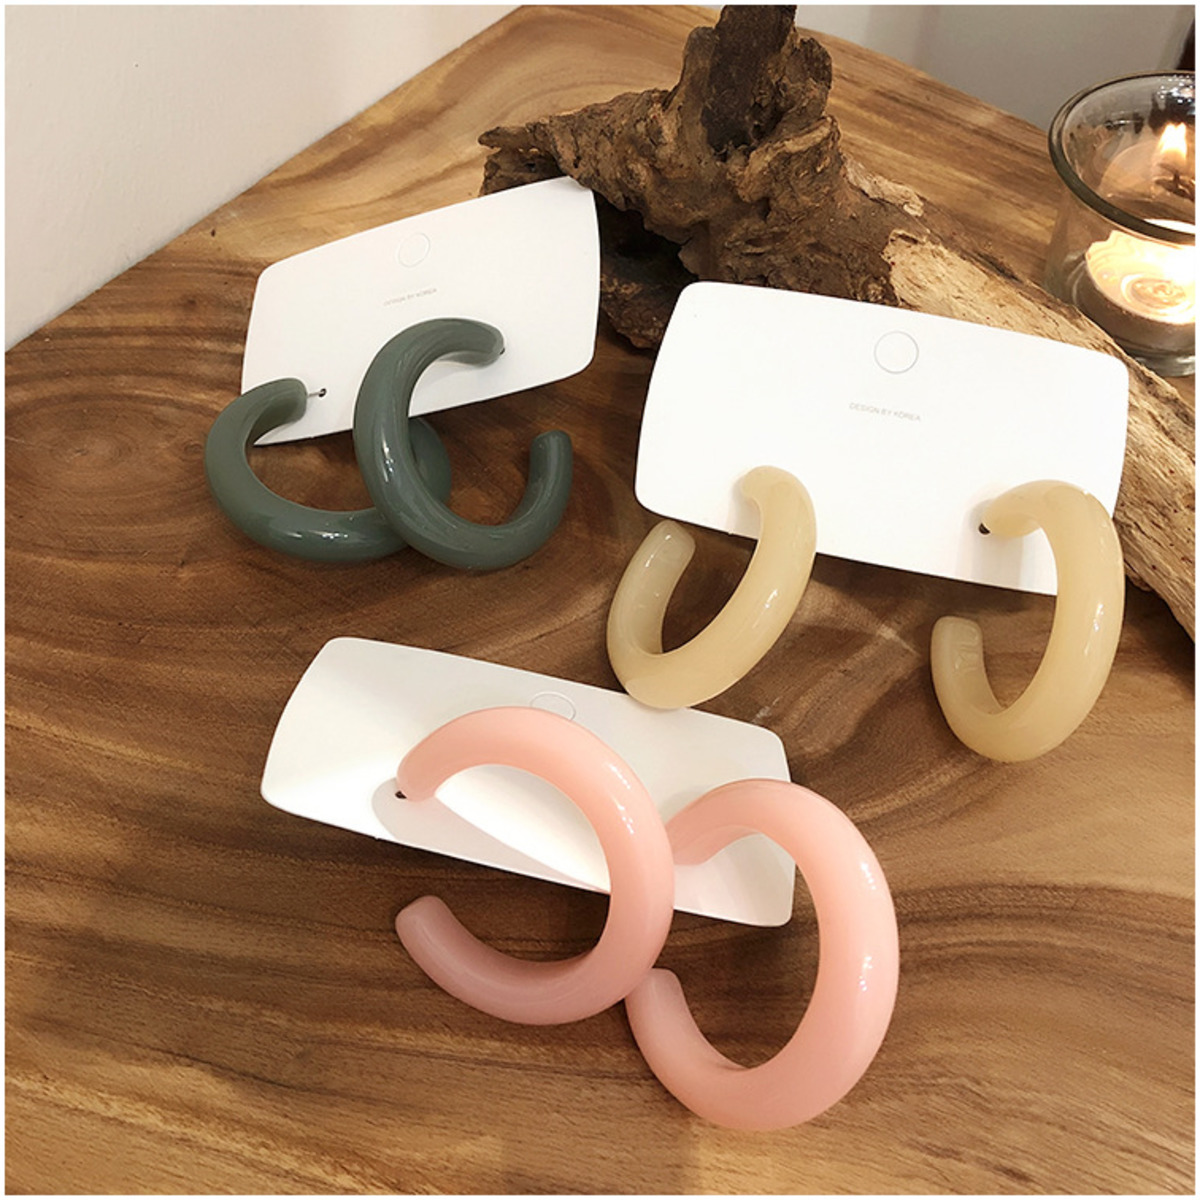 Korea Earrings Acrylic Candy Color C-shaped Big Retro Ear Rings Summer Fashion Female 2019 925sterling Silver